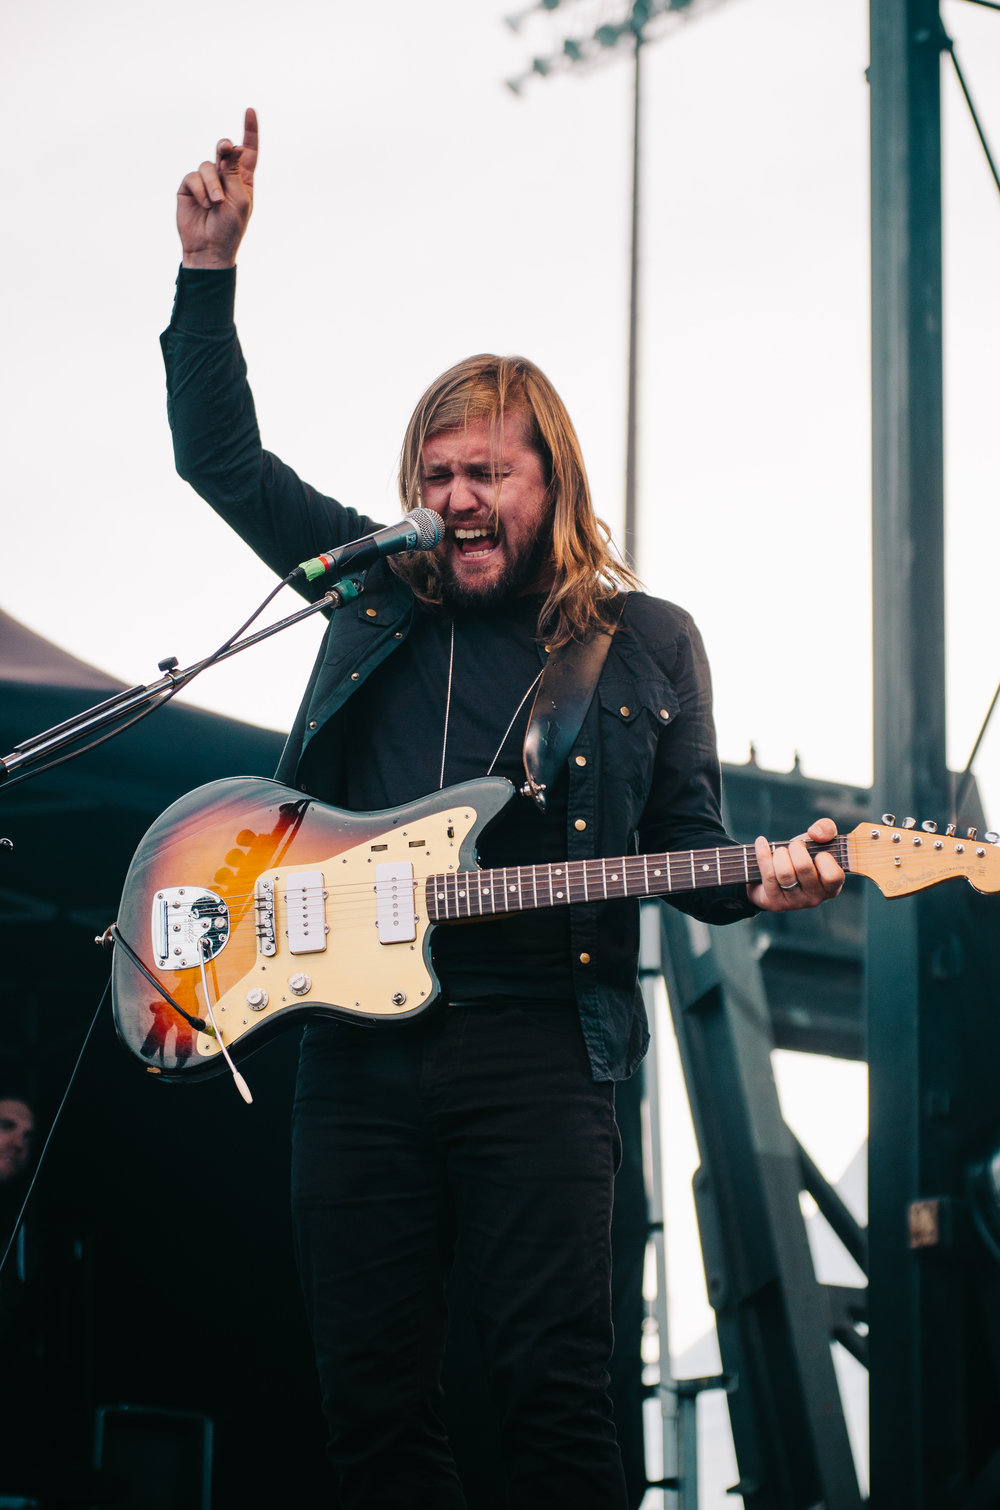 5_Band_of_Skulls_Rifflandia-Timothy_Nguyen-20160917 (18 of 18).jpg